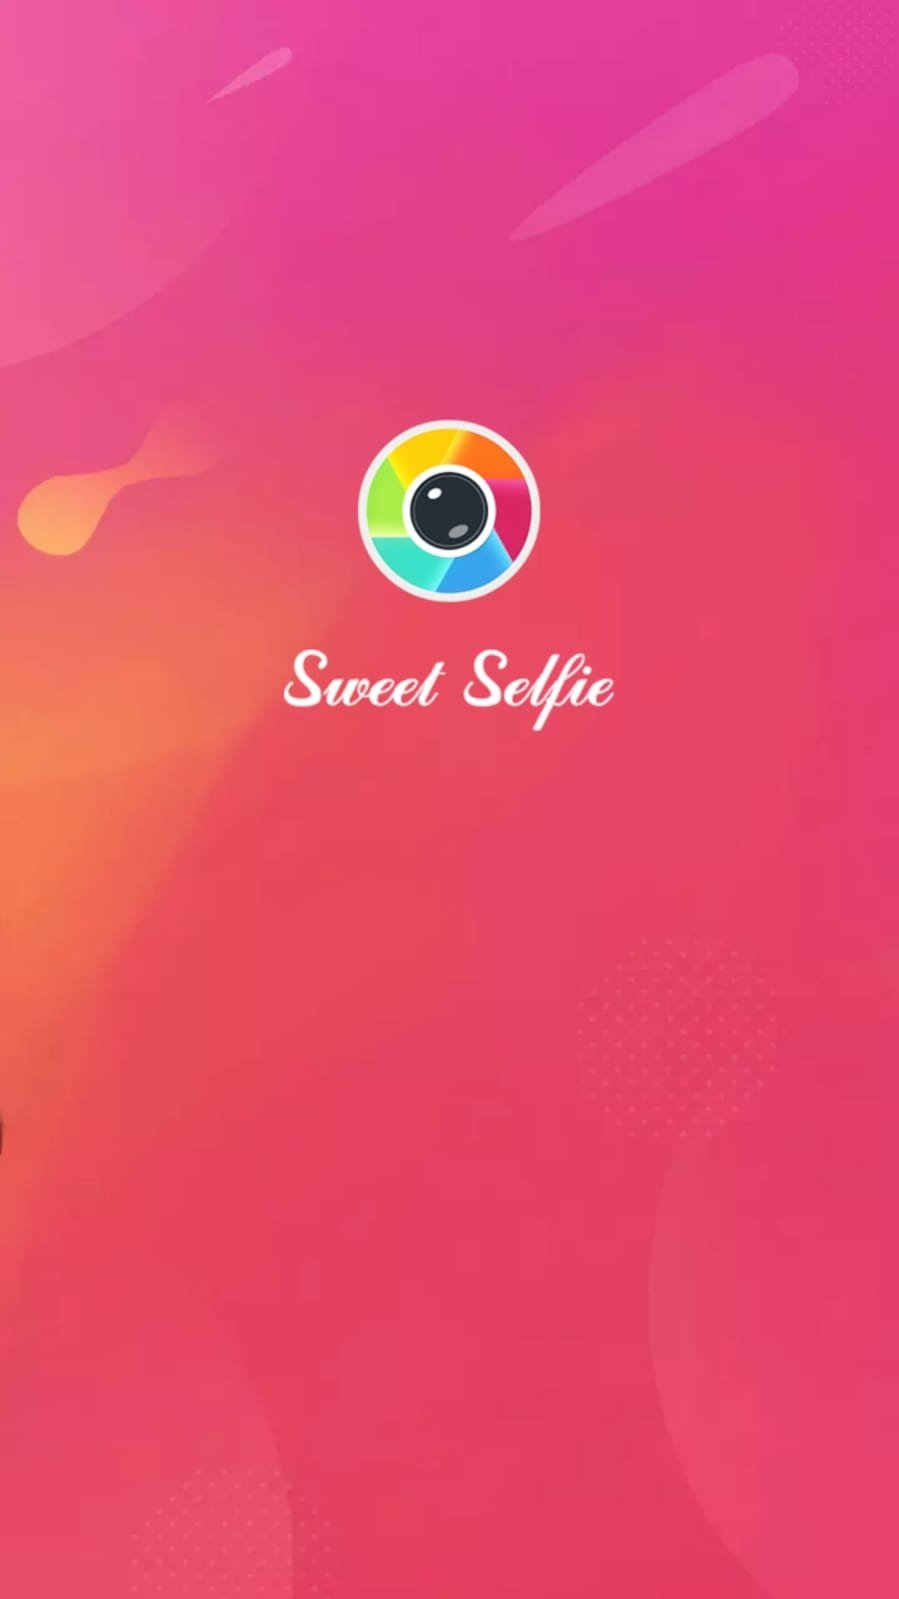 Sweet Selfie - Candy Android image 5